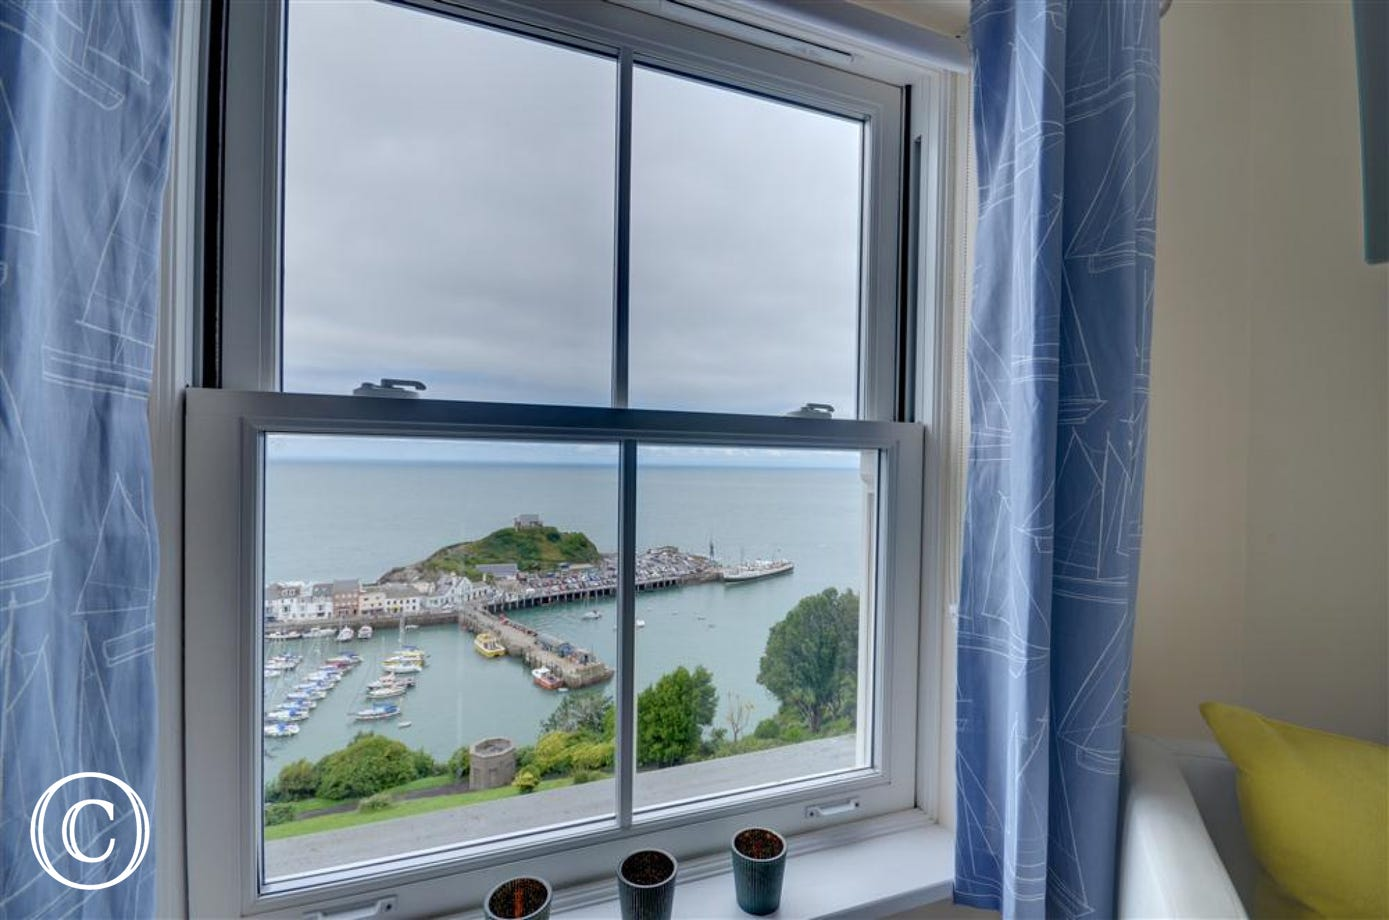 Uninterrupted views of the harbour with fishing and pleasure boats coming and going throughout the day